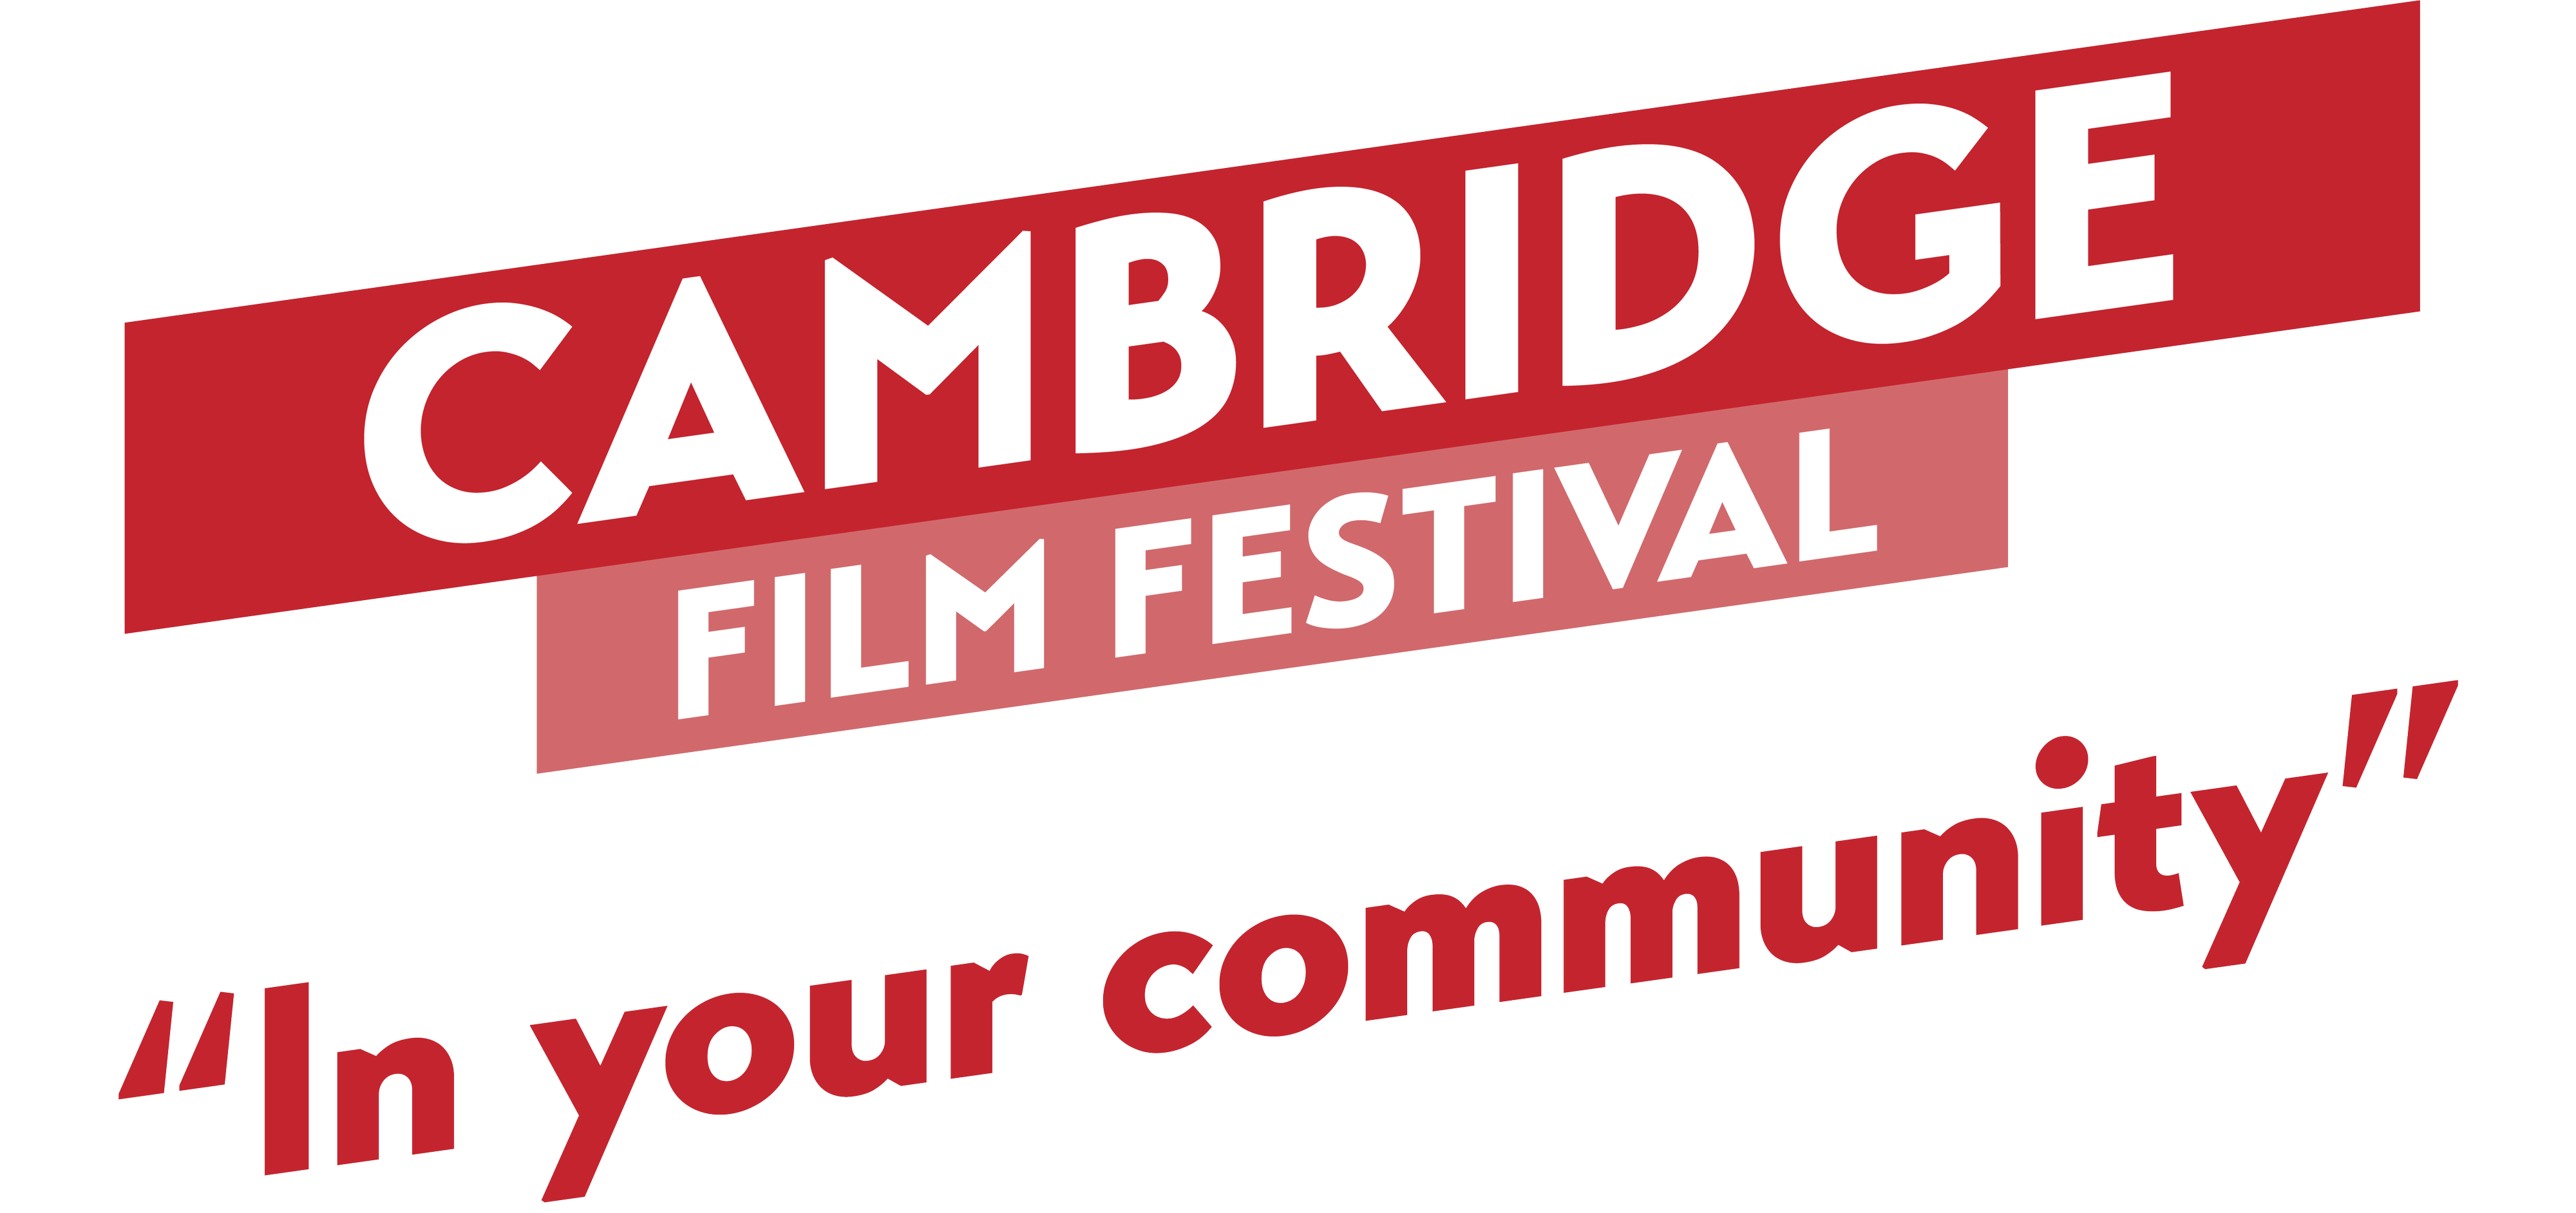 Cambridge Film Festival 'In Your Community' logo